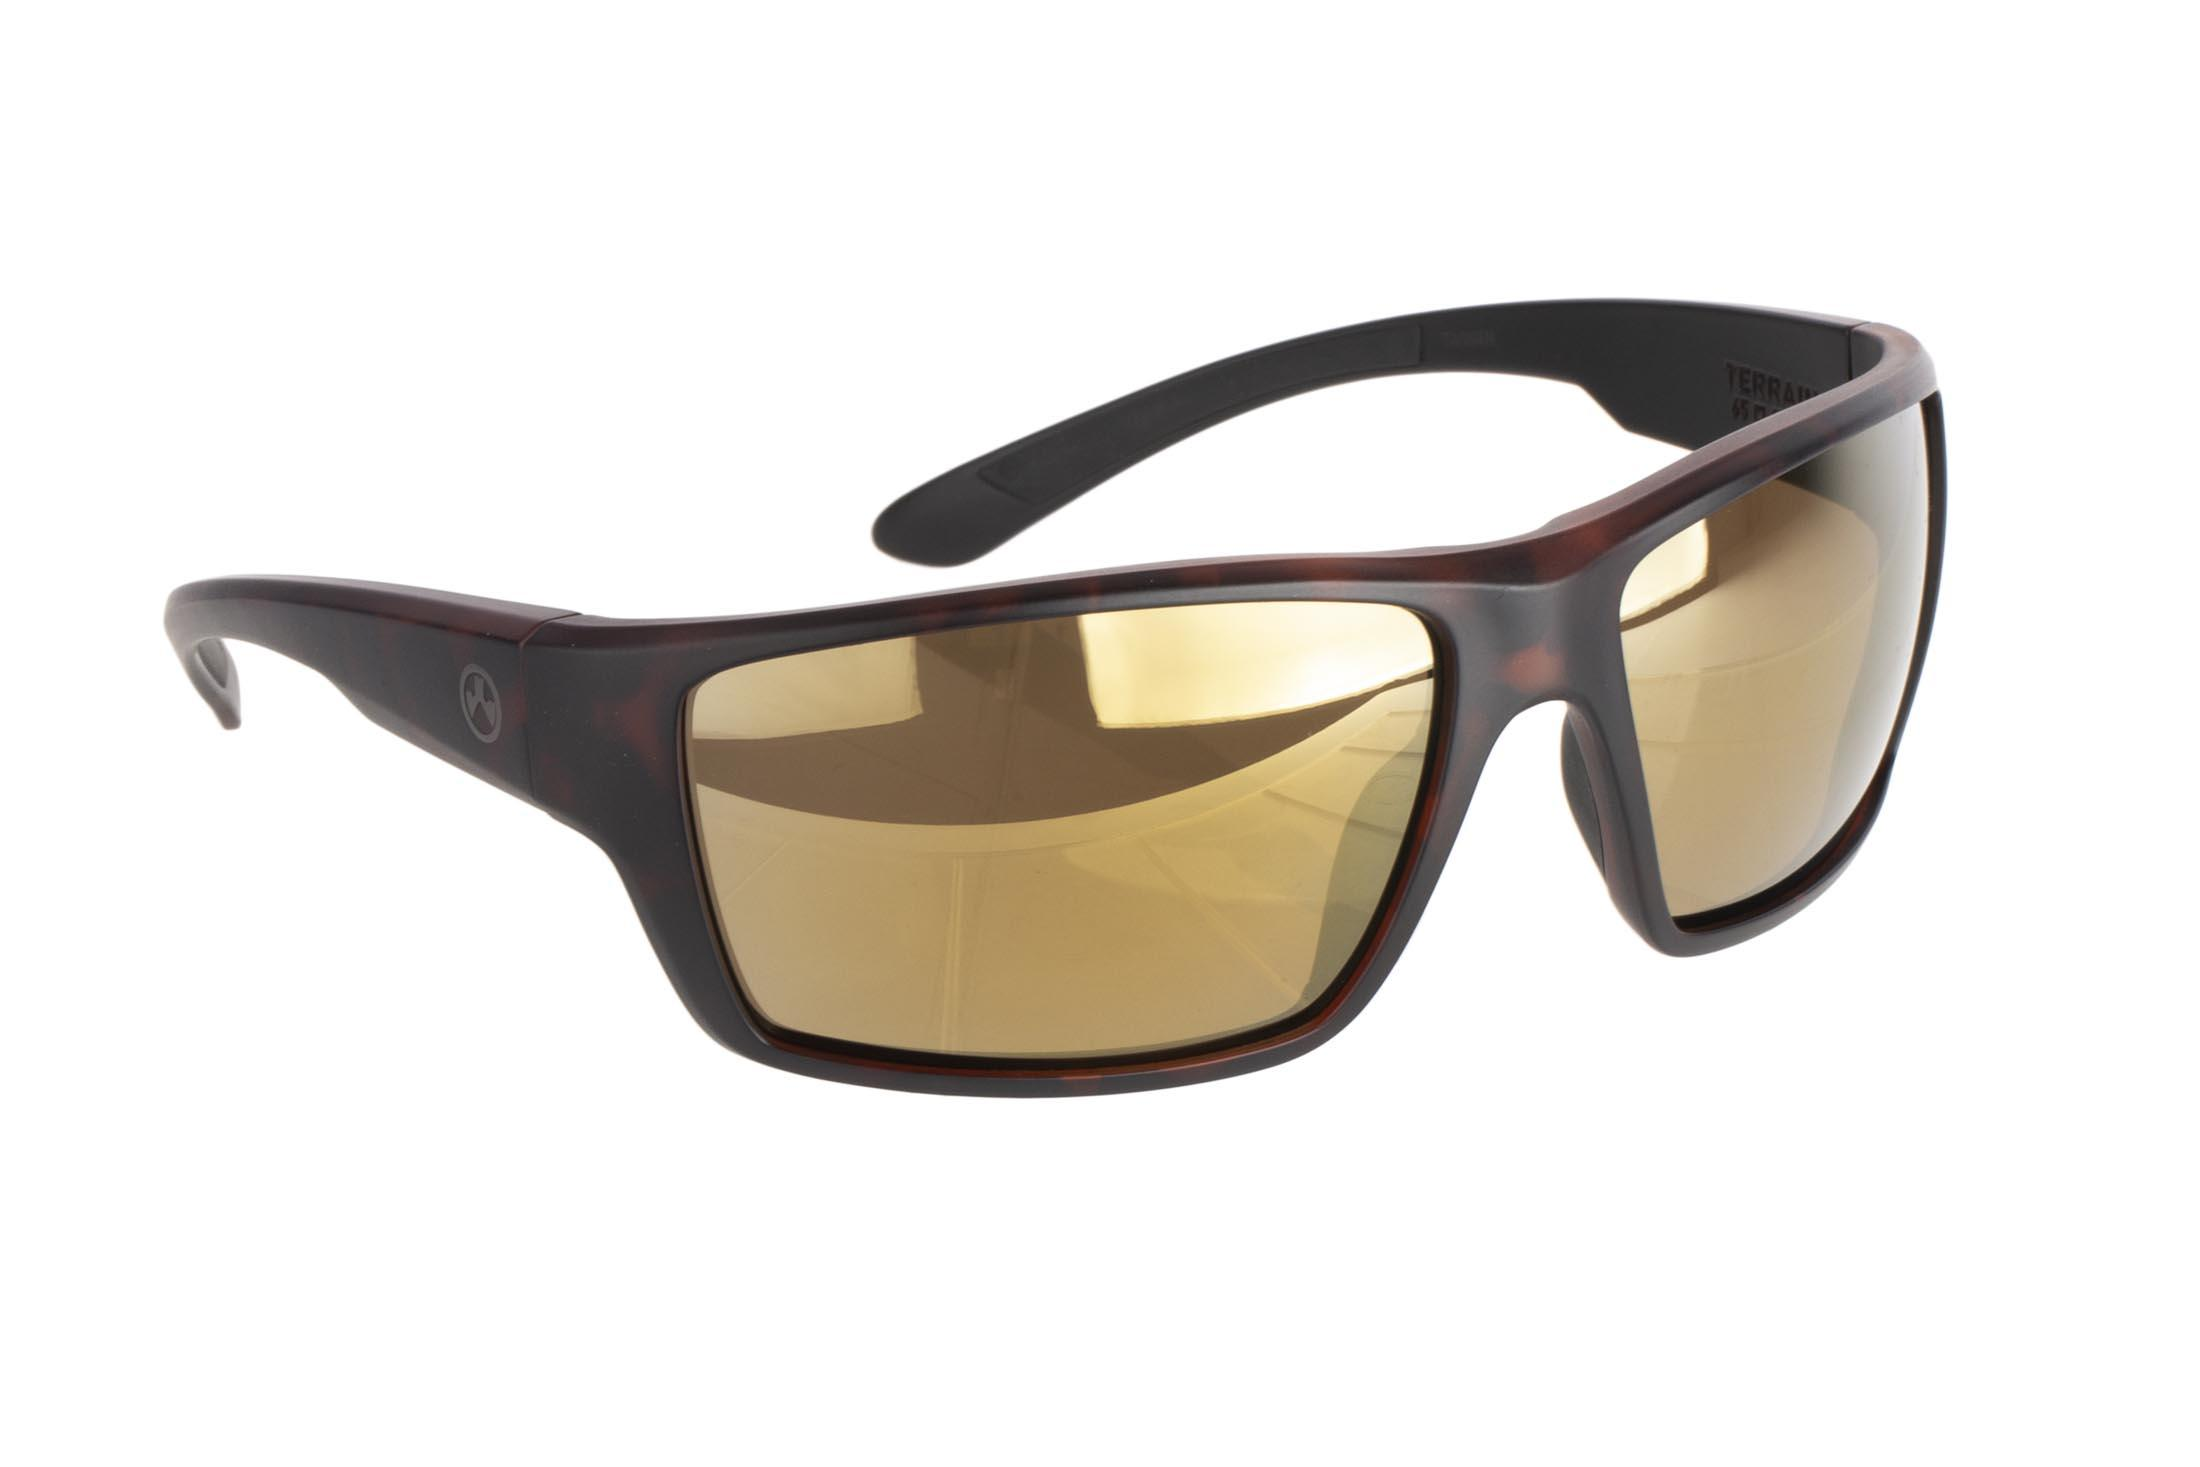 f3f079b223 ... Magpul Terrain ballistic sunglasses with tortoise frame and polarized  bronze gold lenses are ideal for ...